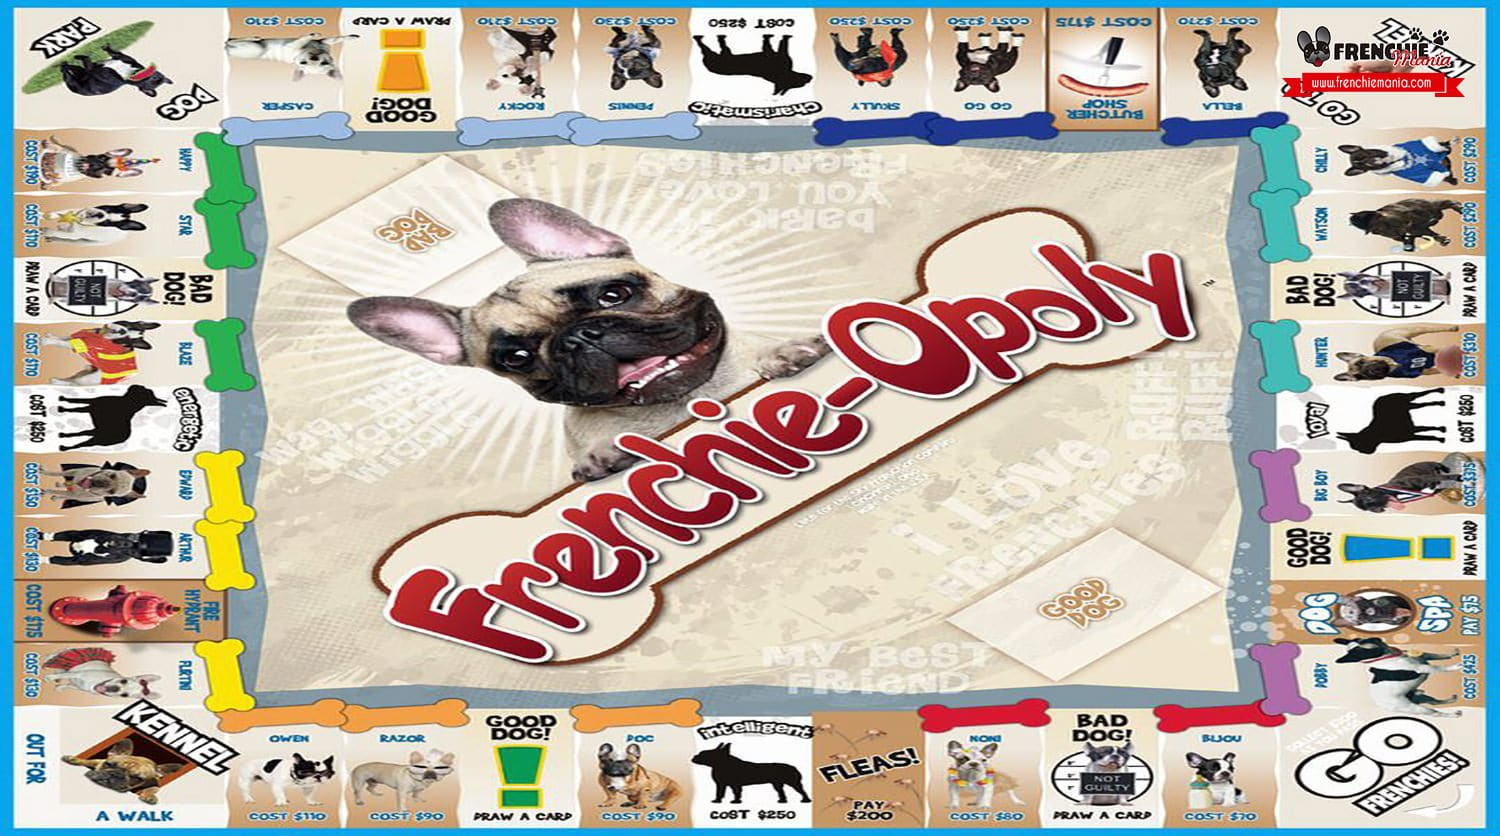 bulldog frances frenchie opoly monopoly